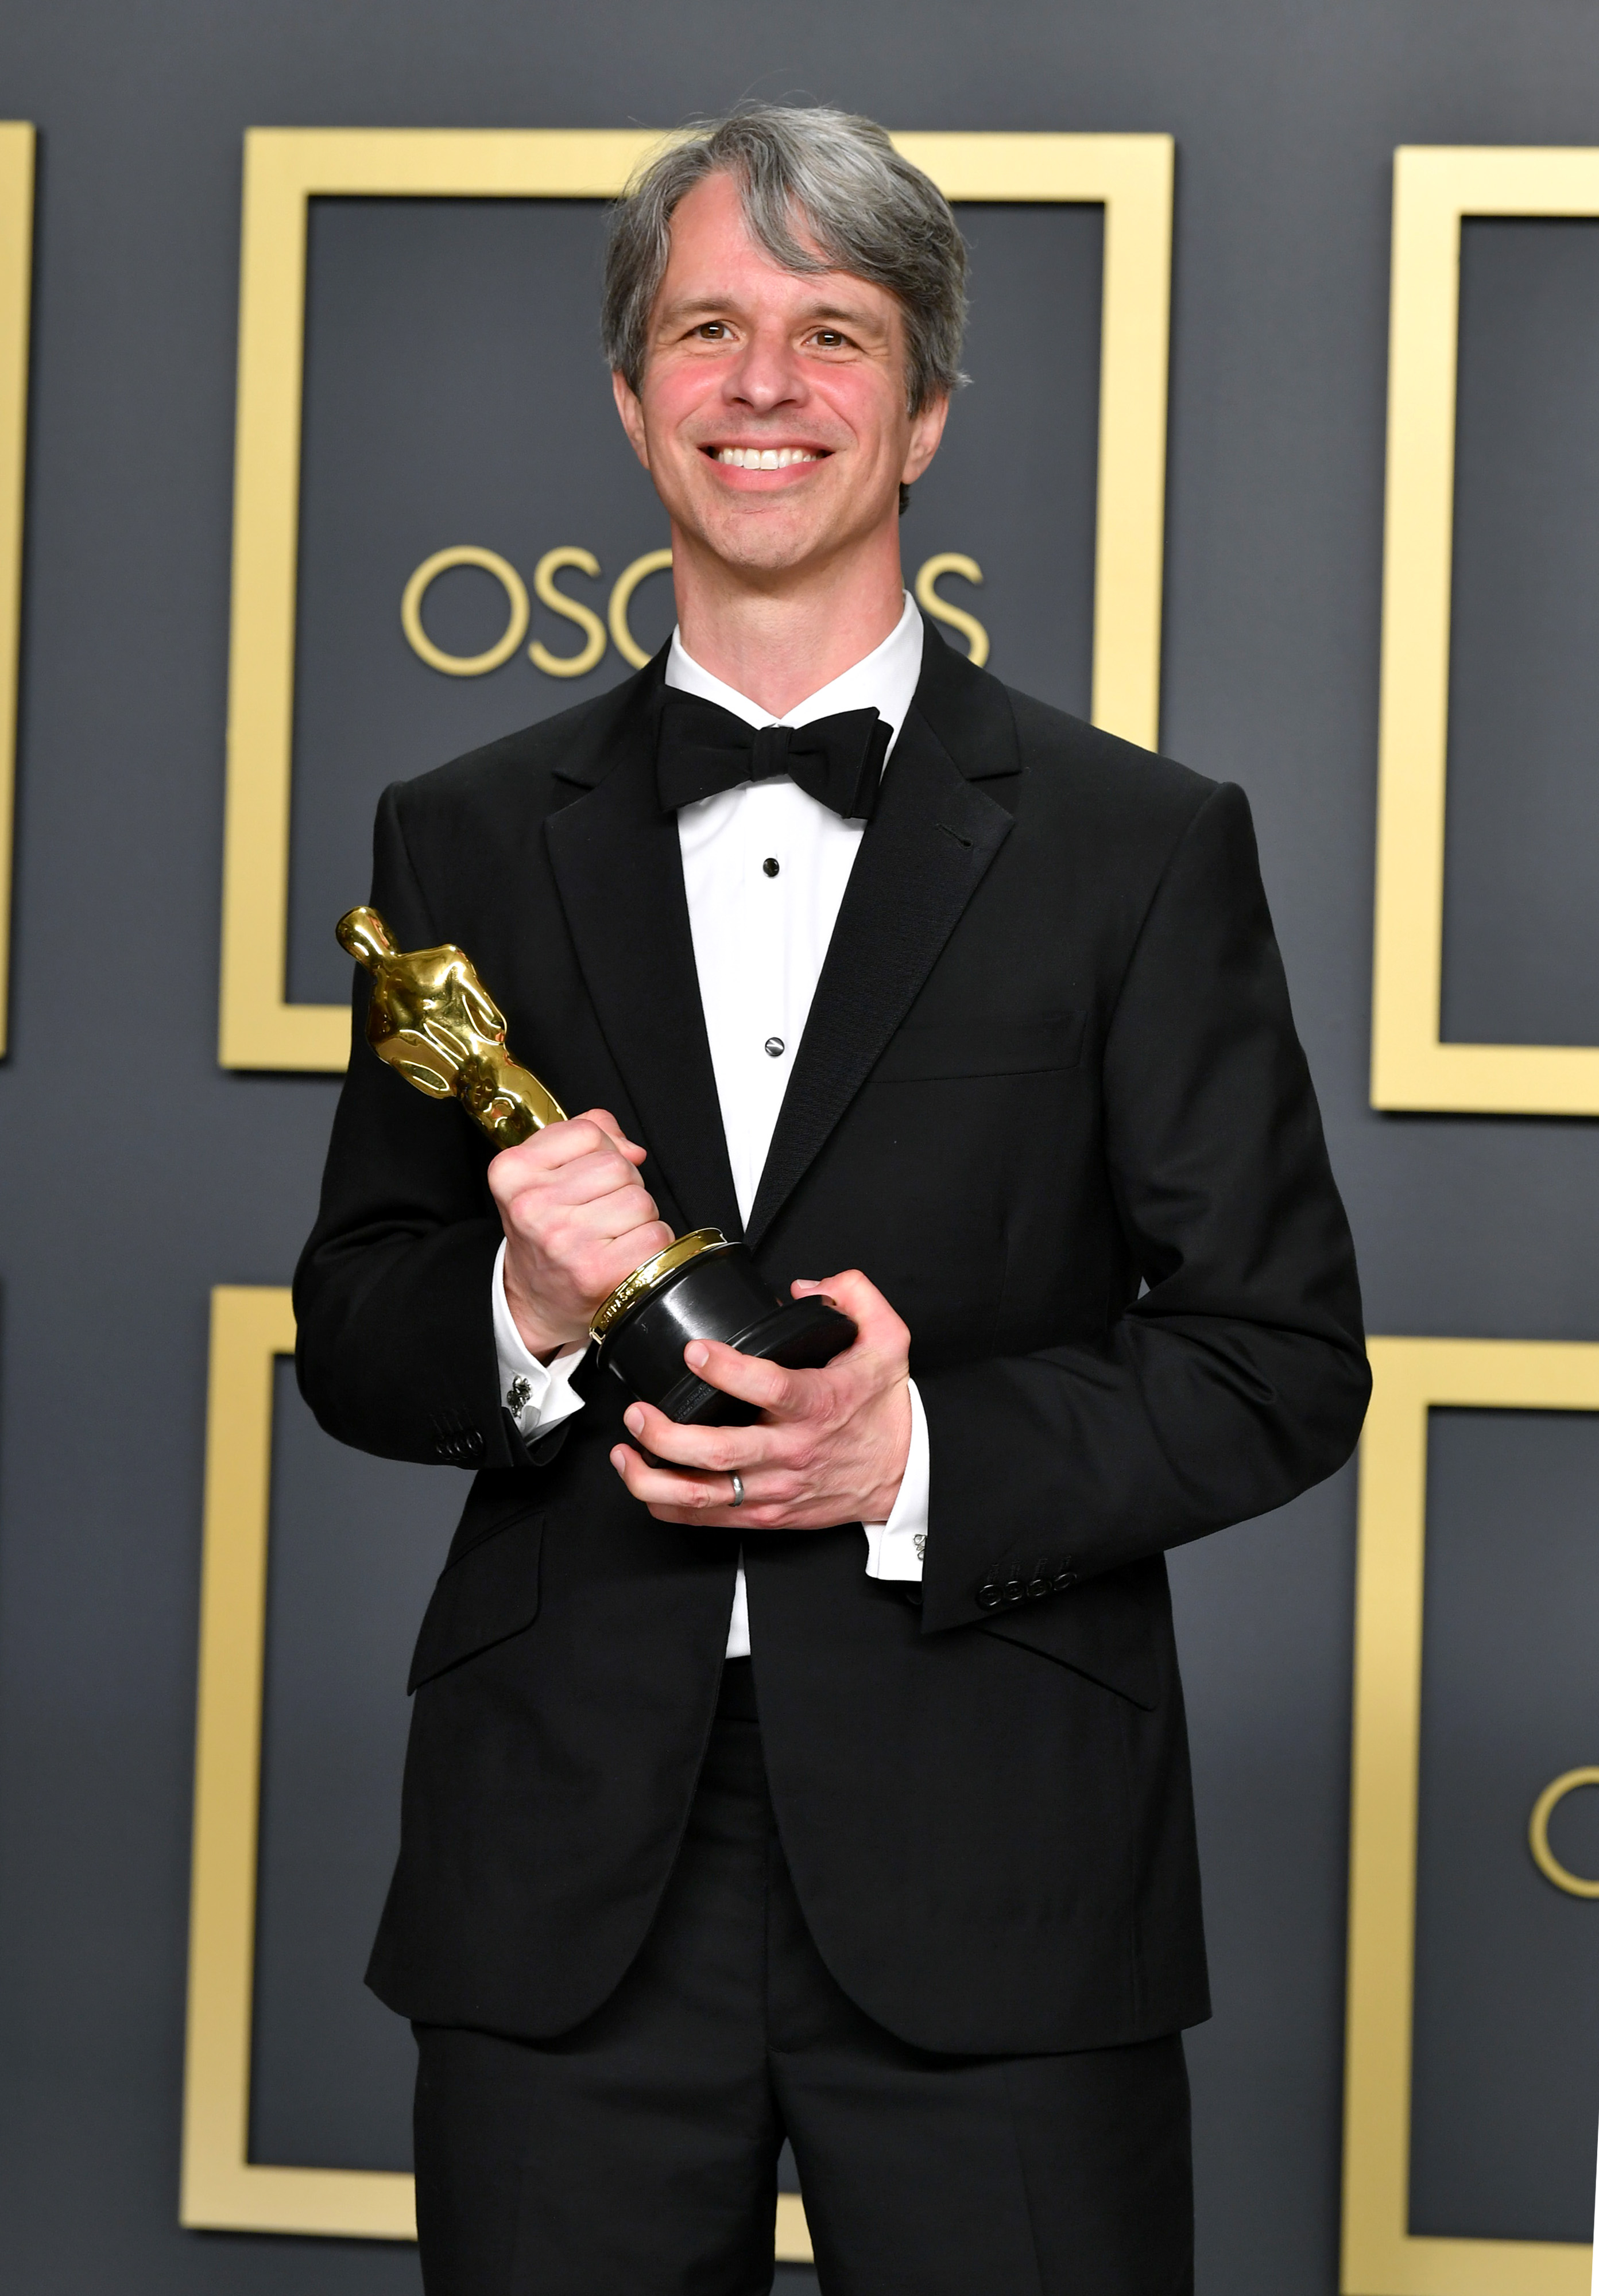 """Director Marshall Curry, winner of the Live Action Short Film award for """"The Neighbors' Window,"""" poses in the press room during the 92nd Annual Academy Awards at Hollywood and Highland on February 09, 2020 in Hollywood, California. (Photo by Amy Sussman/Getty Images)"""